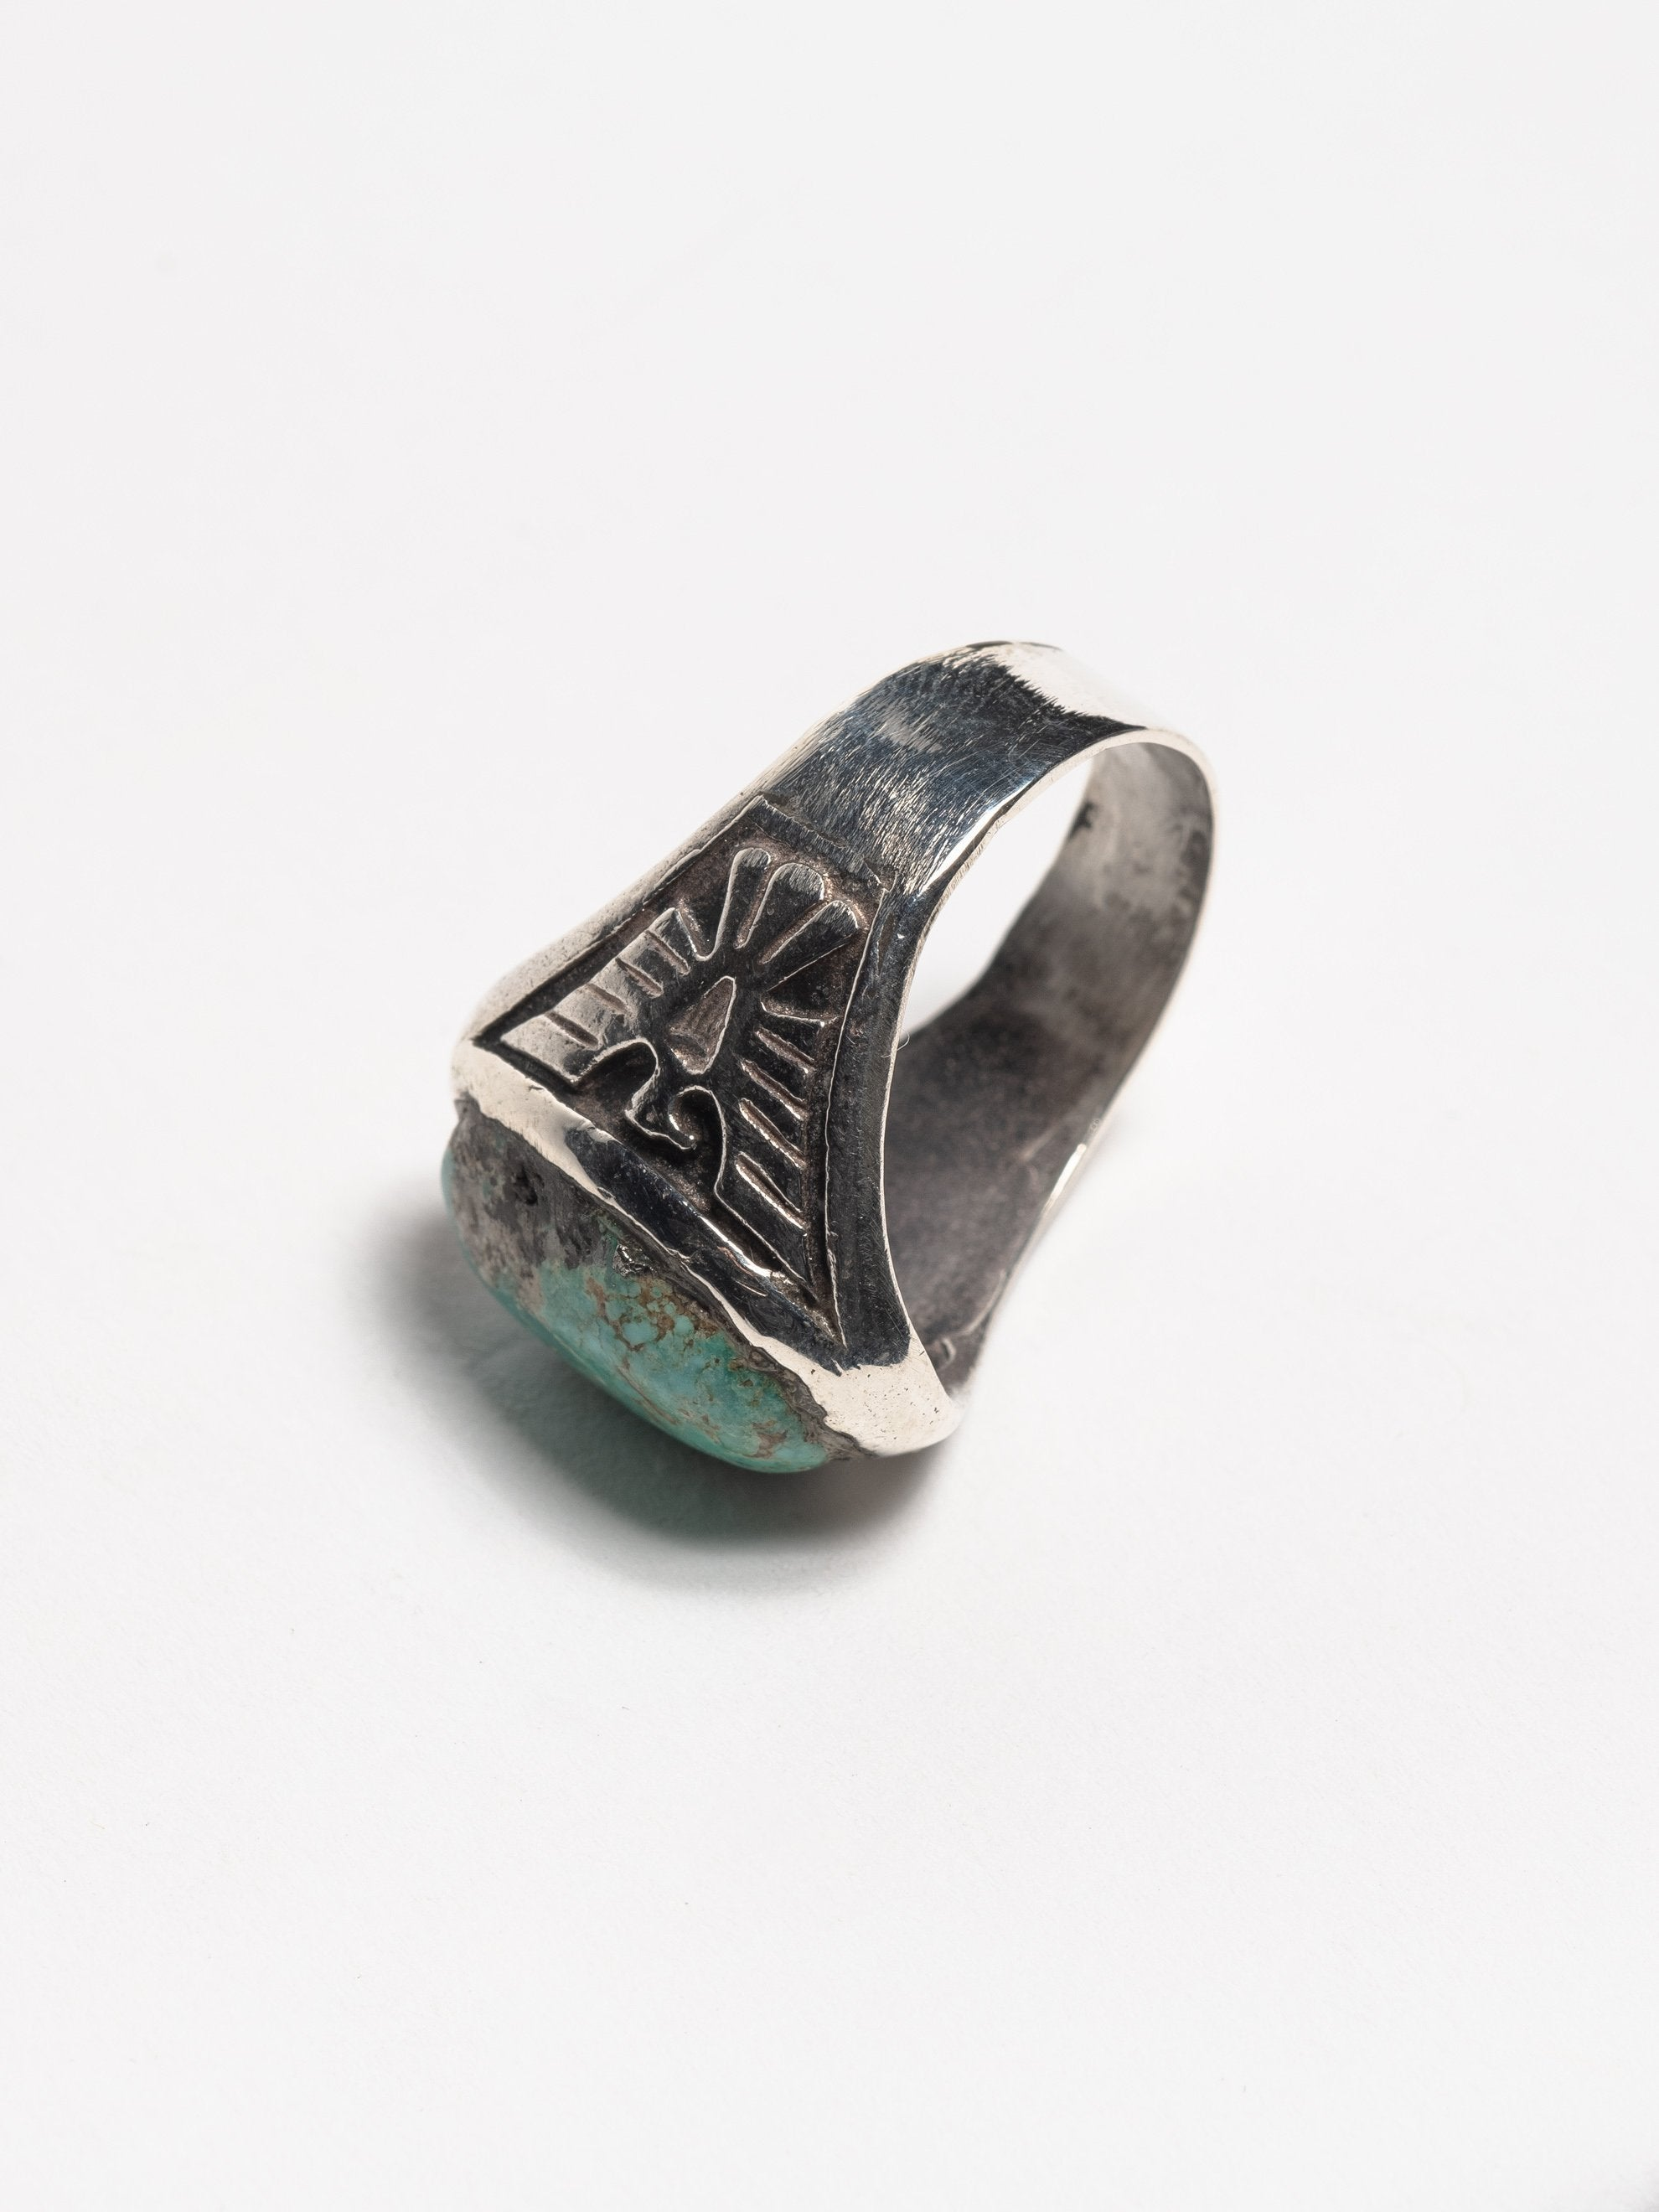 Sterling Silver Vintage 1950's Navajo Sterling Silver Men's Ring with inset cast thunderbirds and early Morenci turquoise stone 3